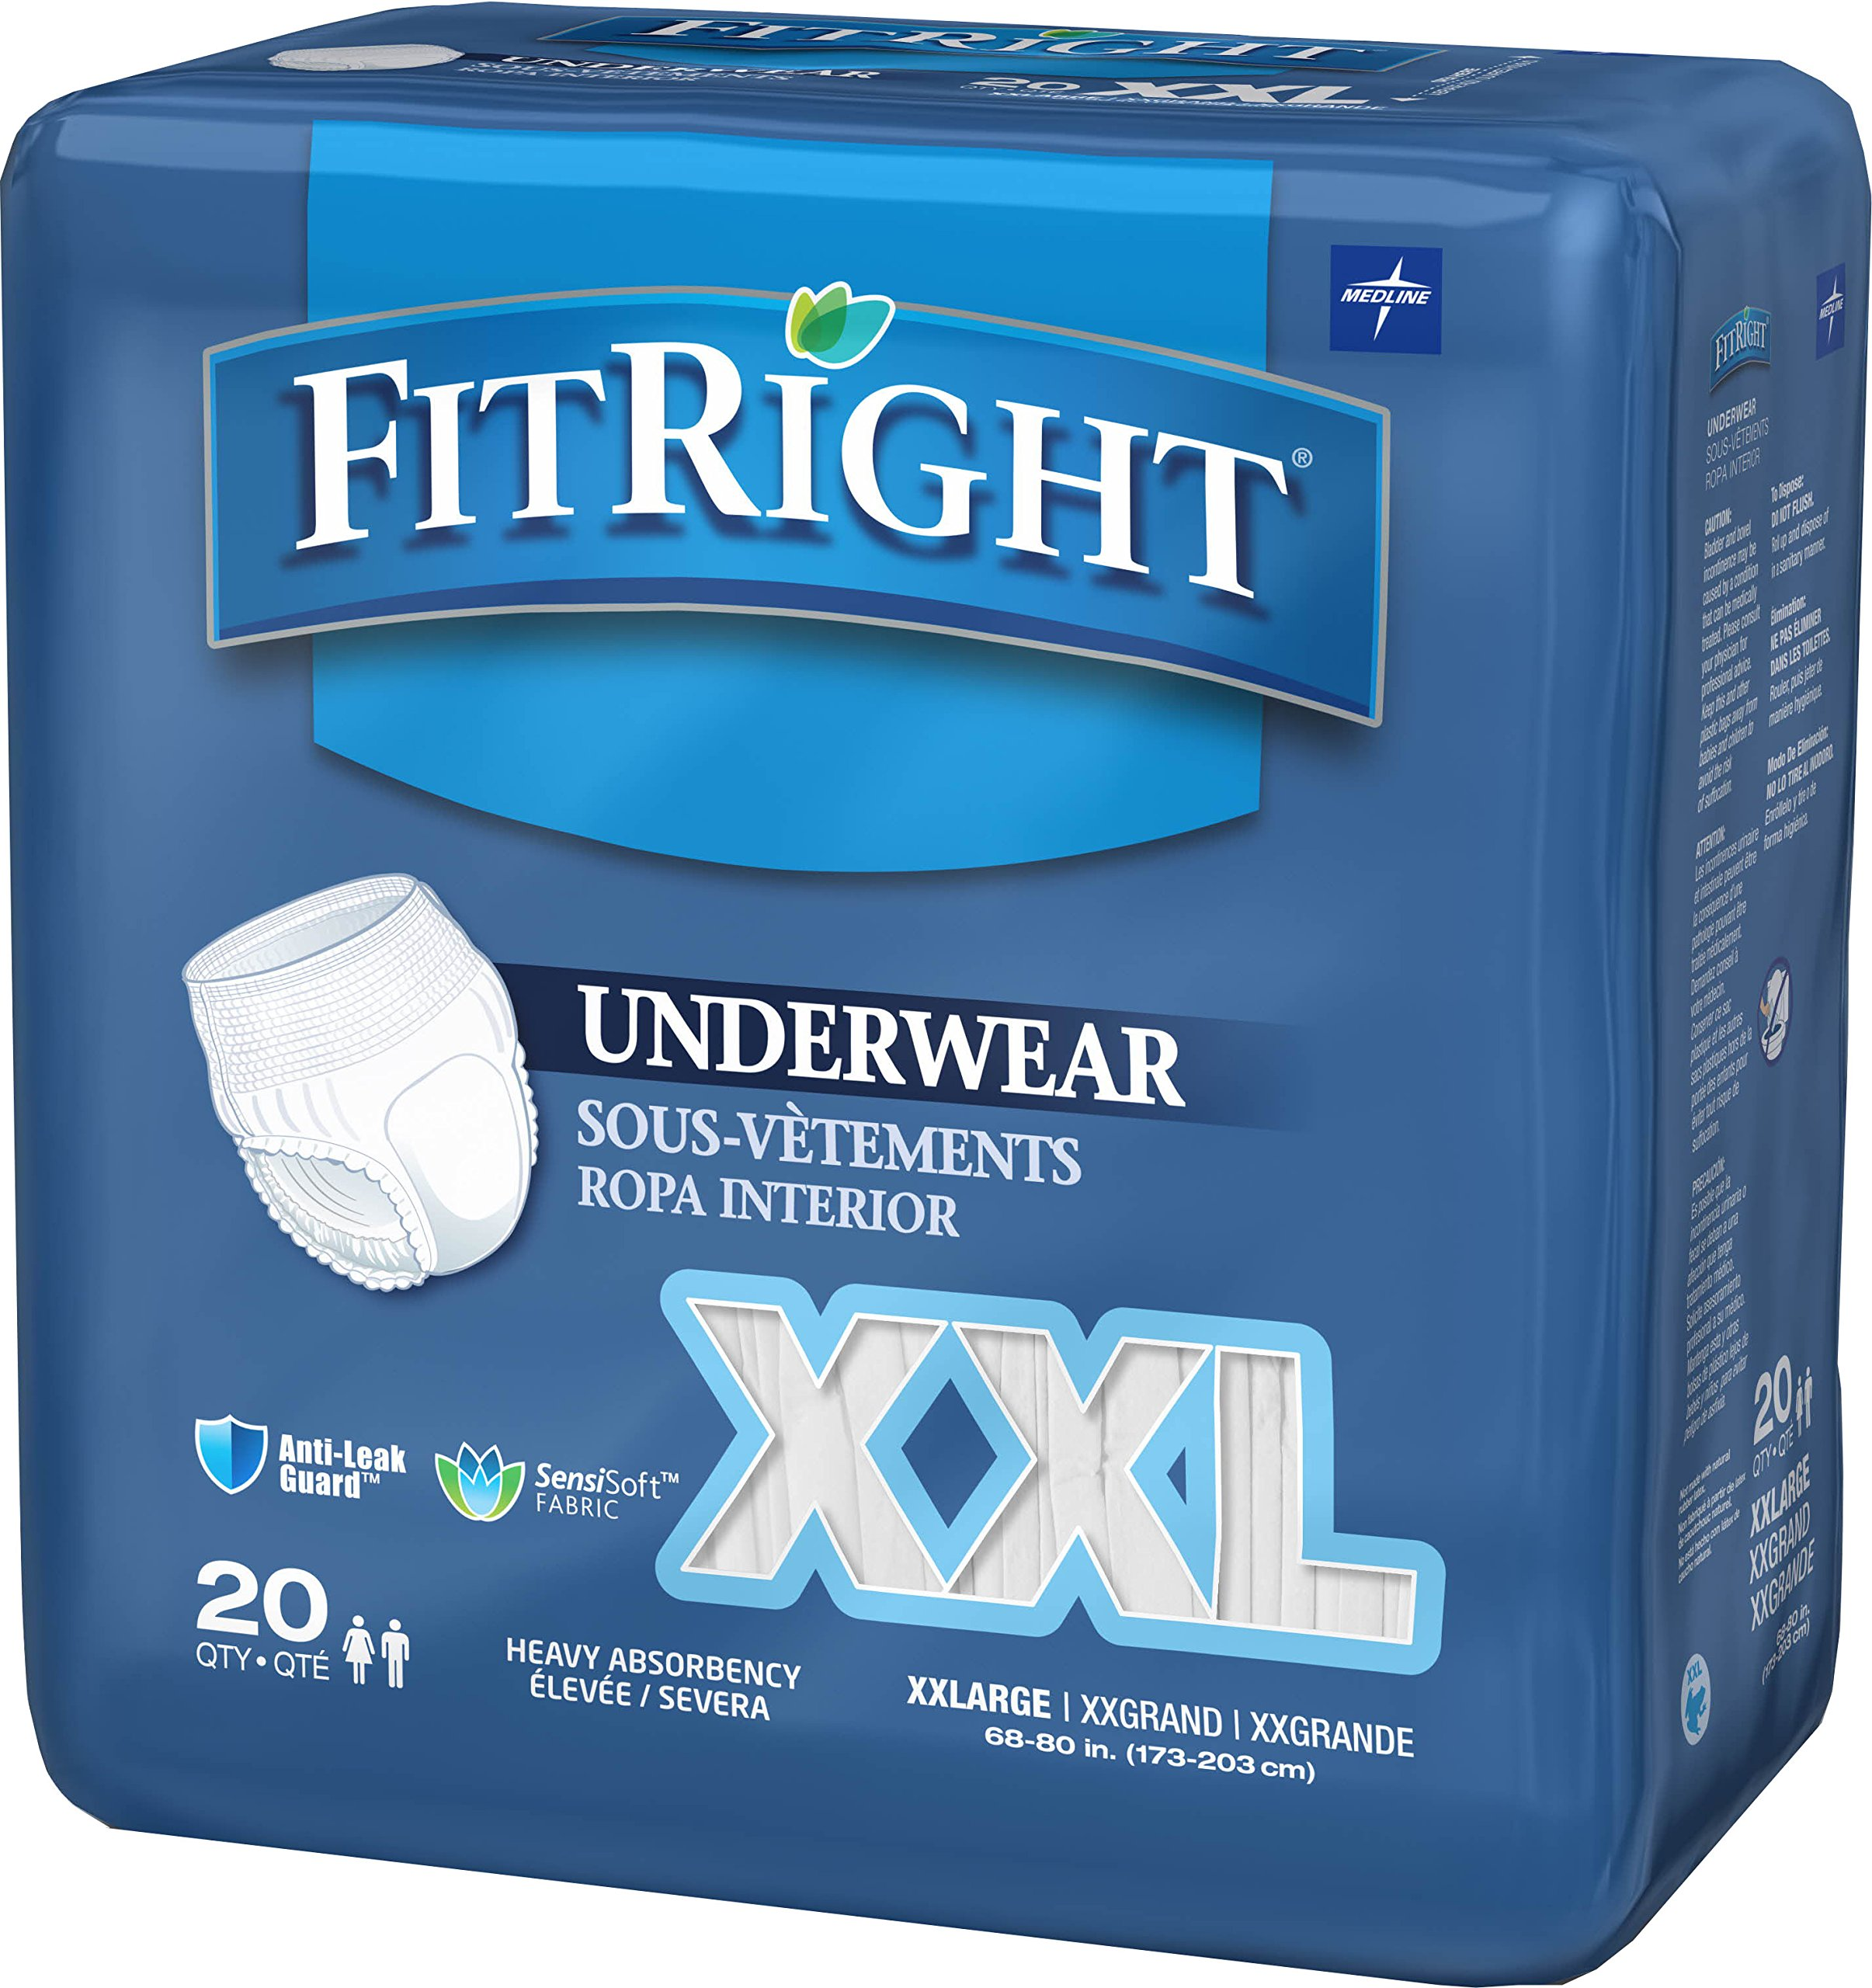 FitRight 2XL Adult Protective Underwear, Heavy Absorbency with Anti-Leak Guards, 68''-80'' (80 Count)